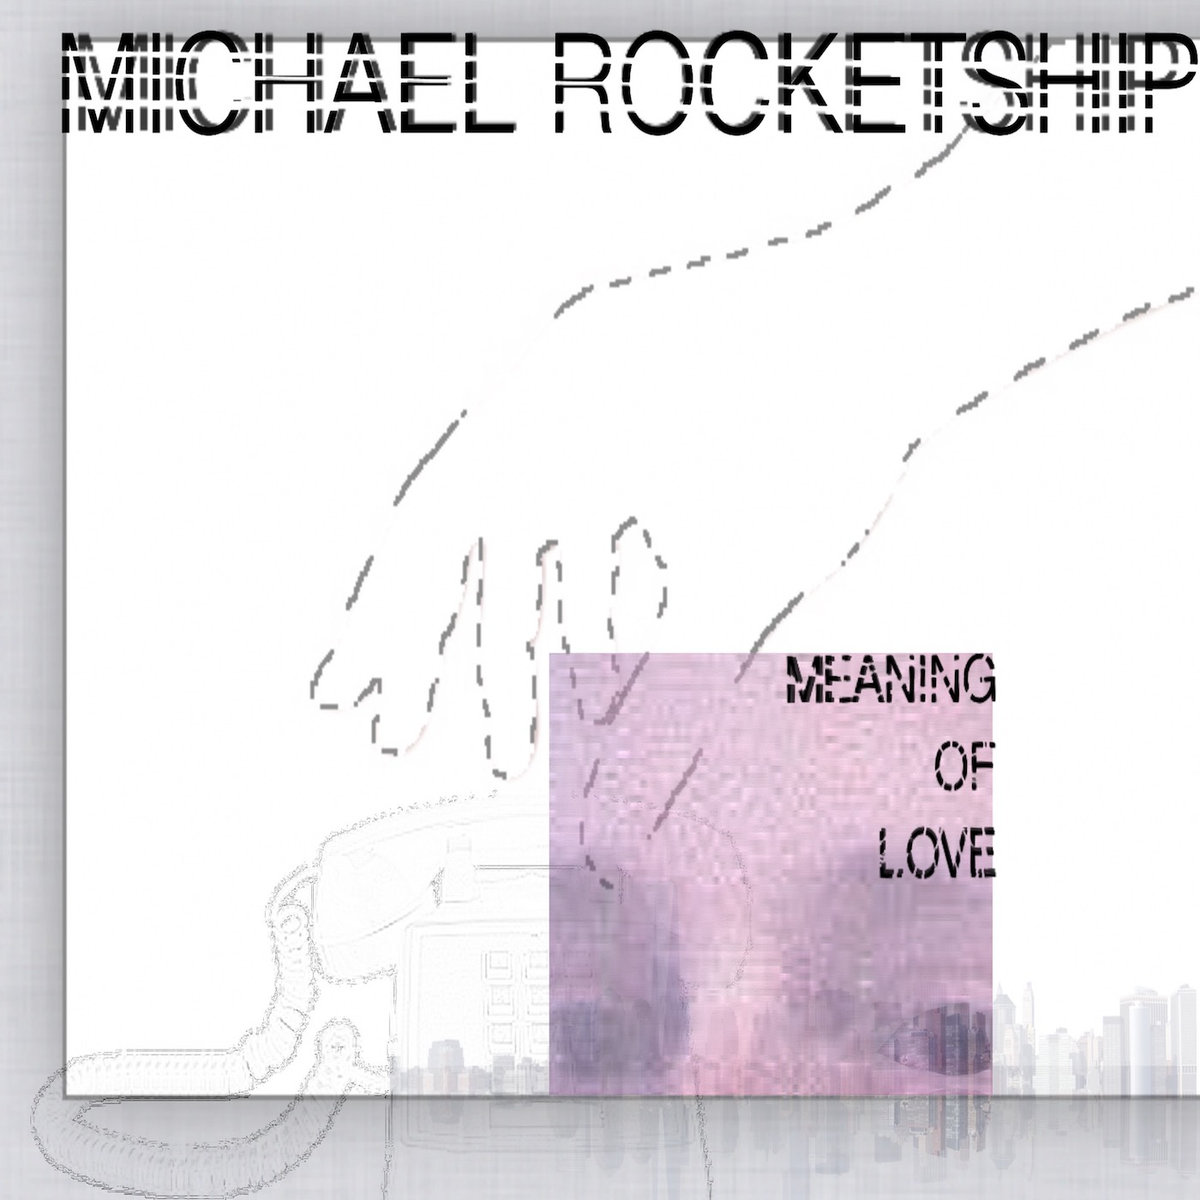 rocket ship diagram 4 prong dryer outlet wiring review michael rocketship meaning of love thrdcoast